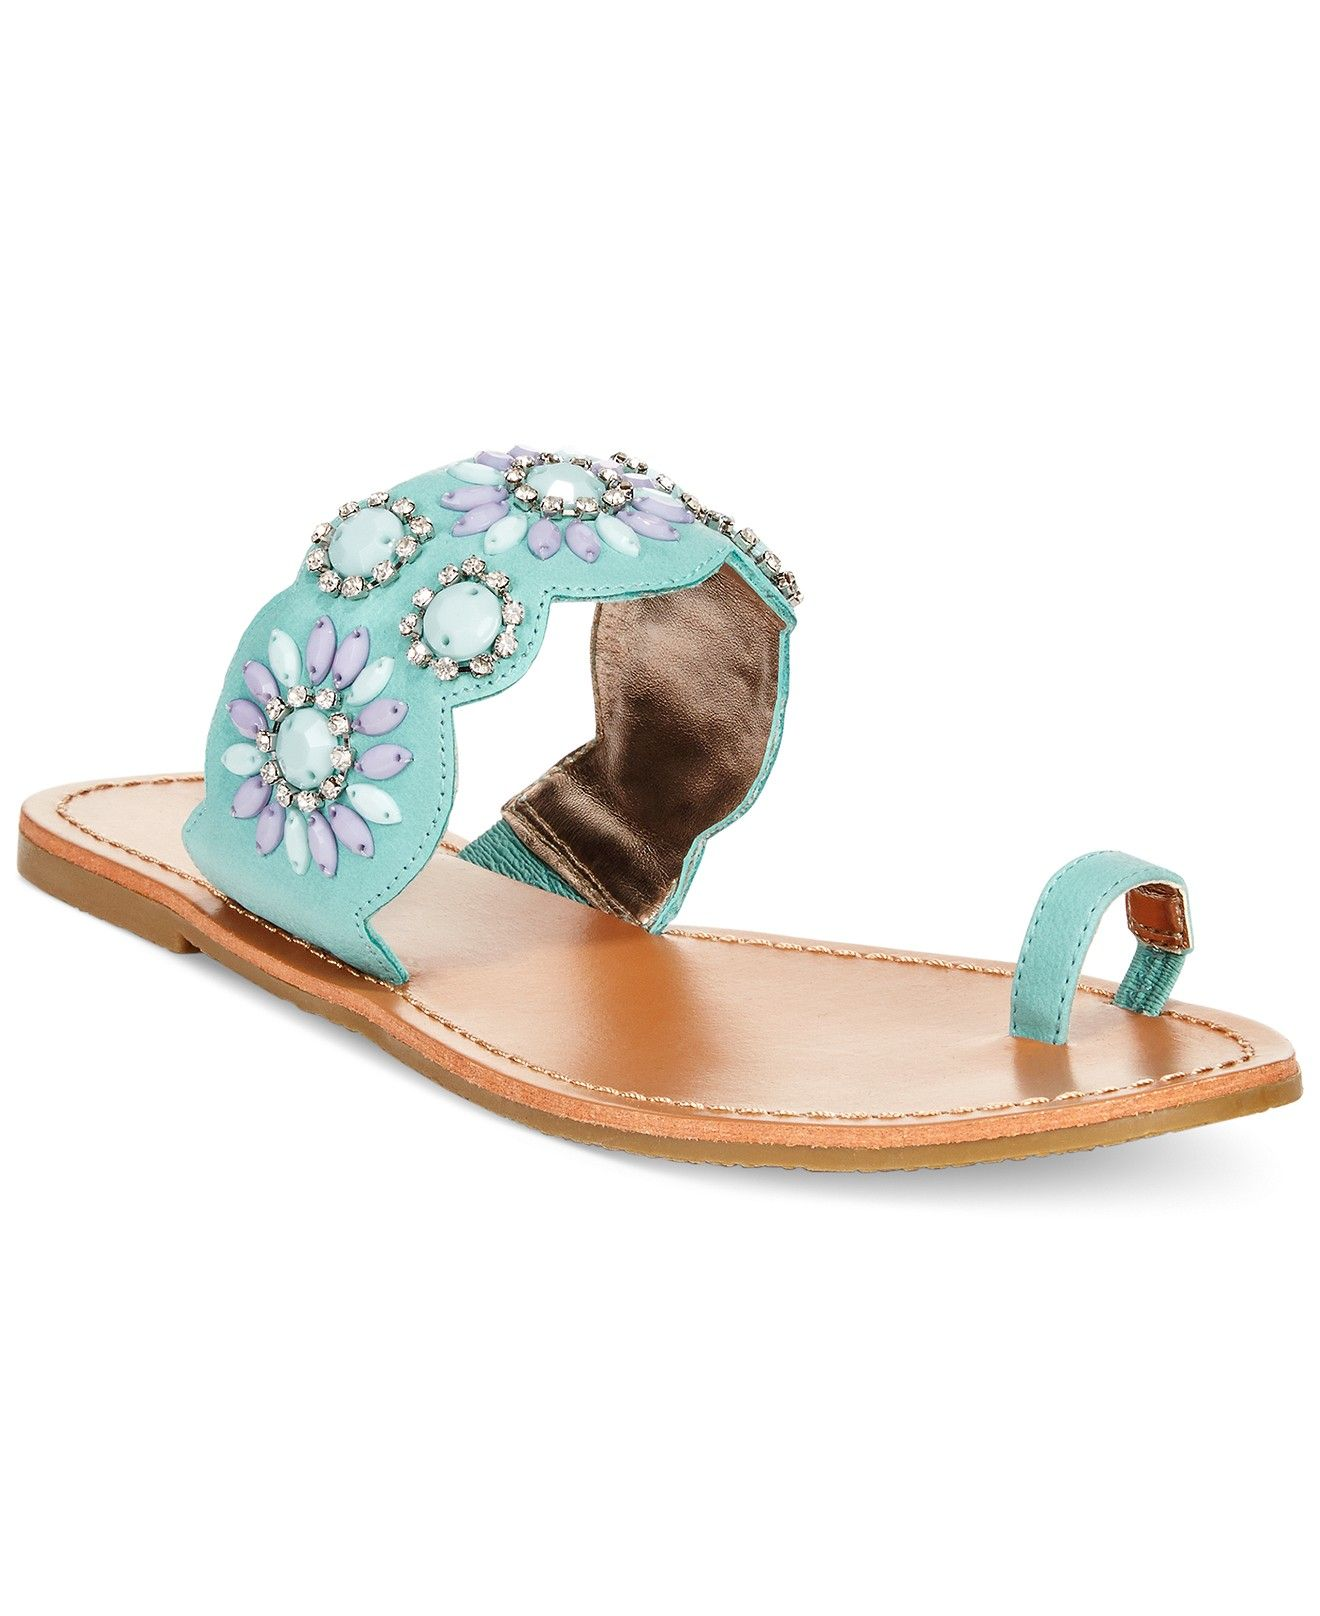 40714a8f3804 XOXO Rio Embellished Sandals - Shoes - Macy s  XOXO  shoes  XOXOshoes   XOXOfashion  sandals